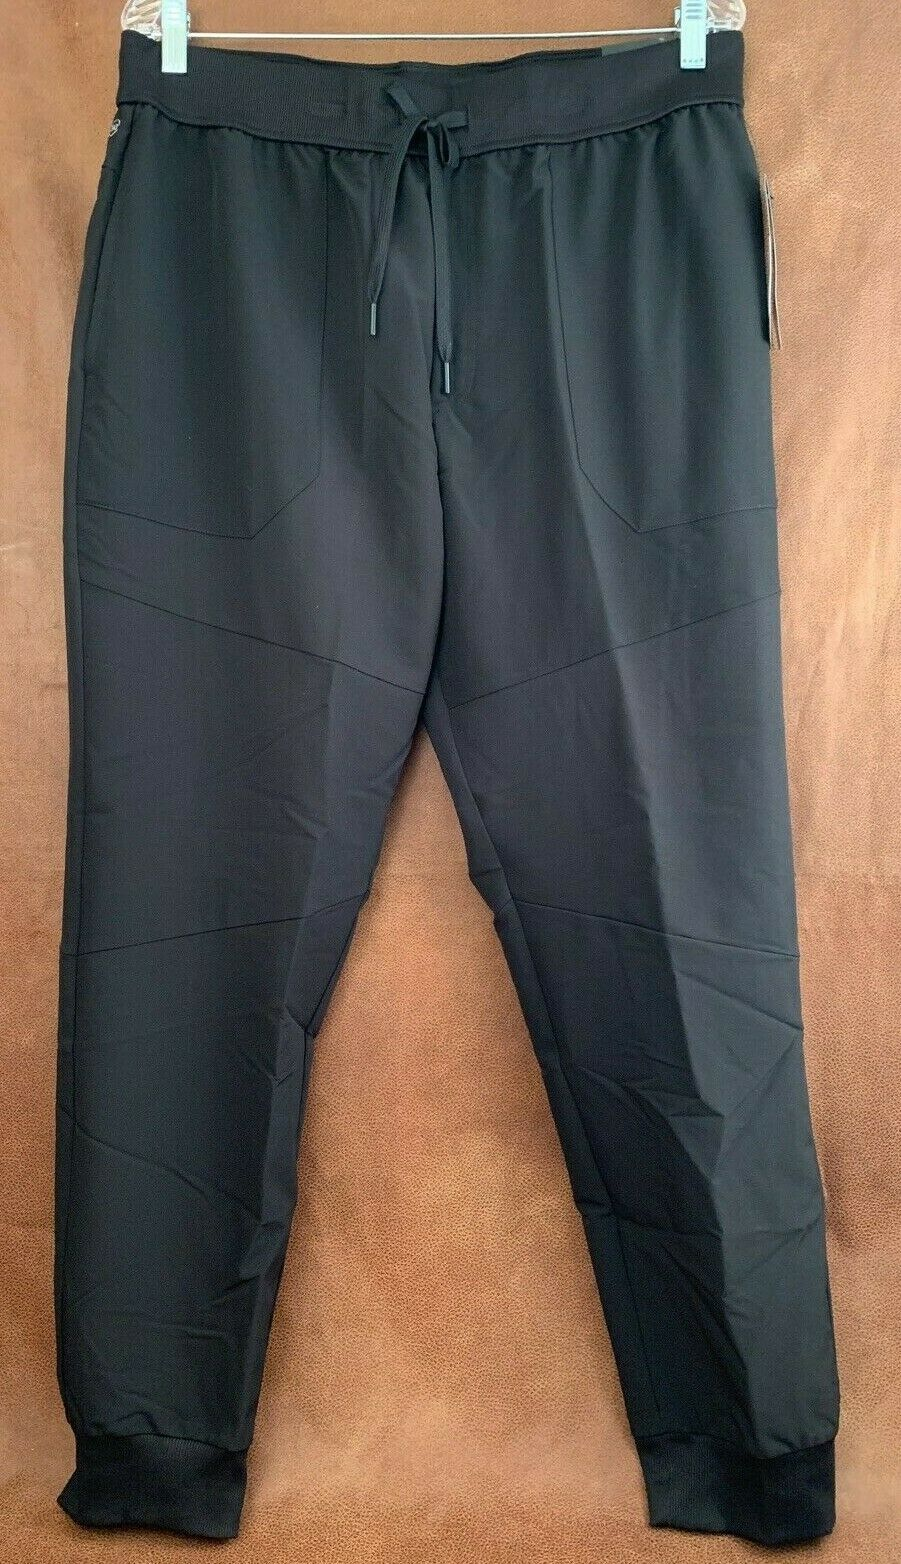 Russell Training Fit Slim Woven Jogger Pants, Men's L, RM493